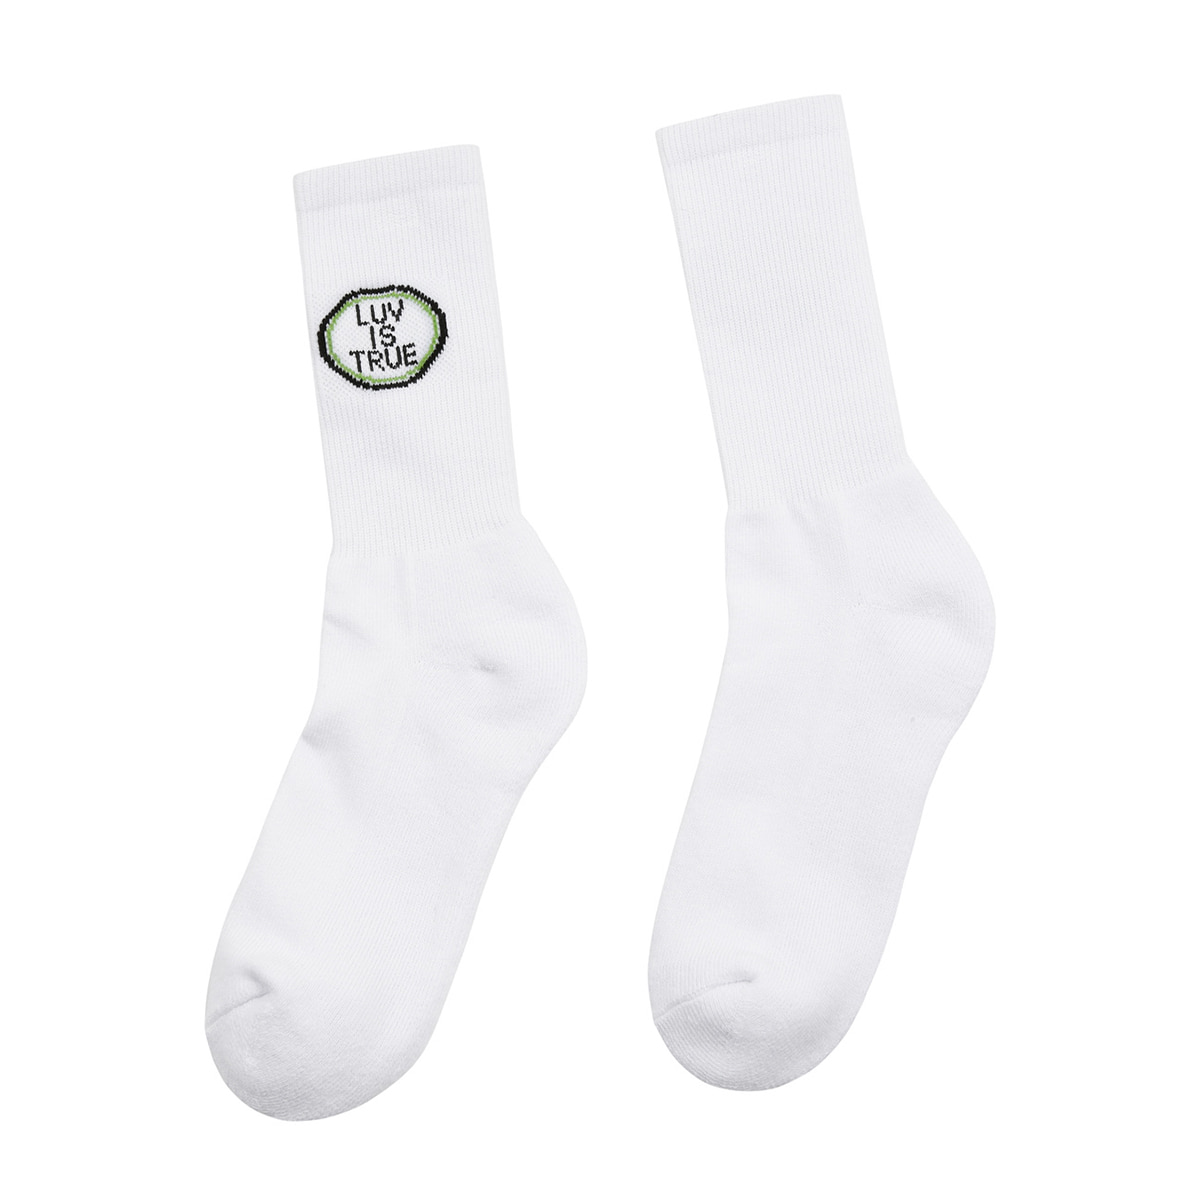 (UNISEX)DS CIRCLE LOGO SOCKS (BLUE)